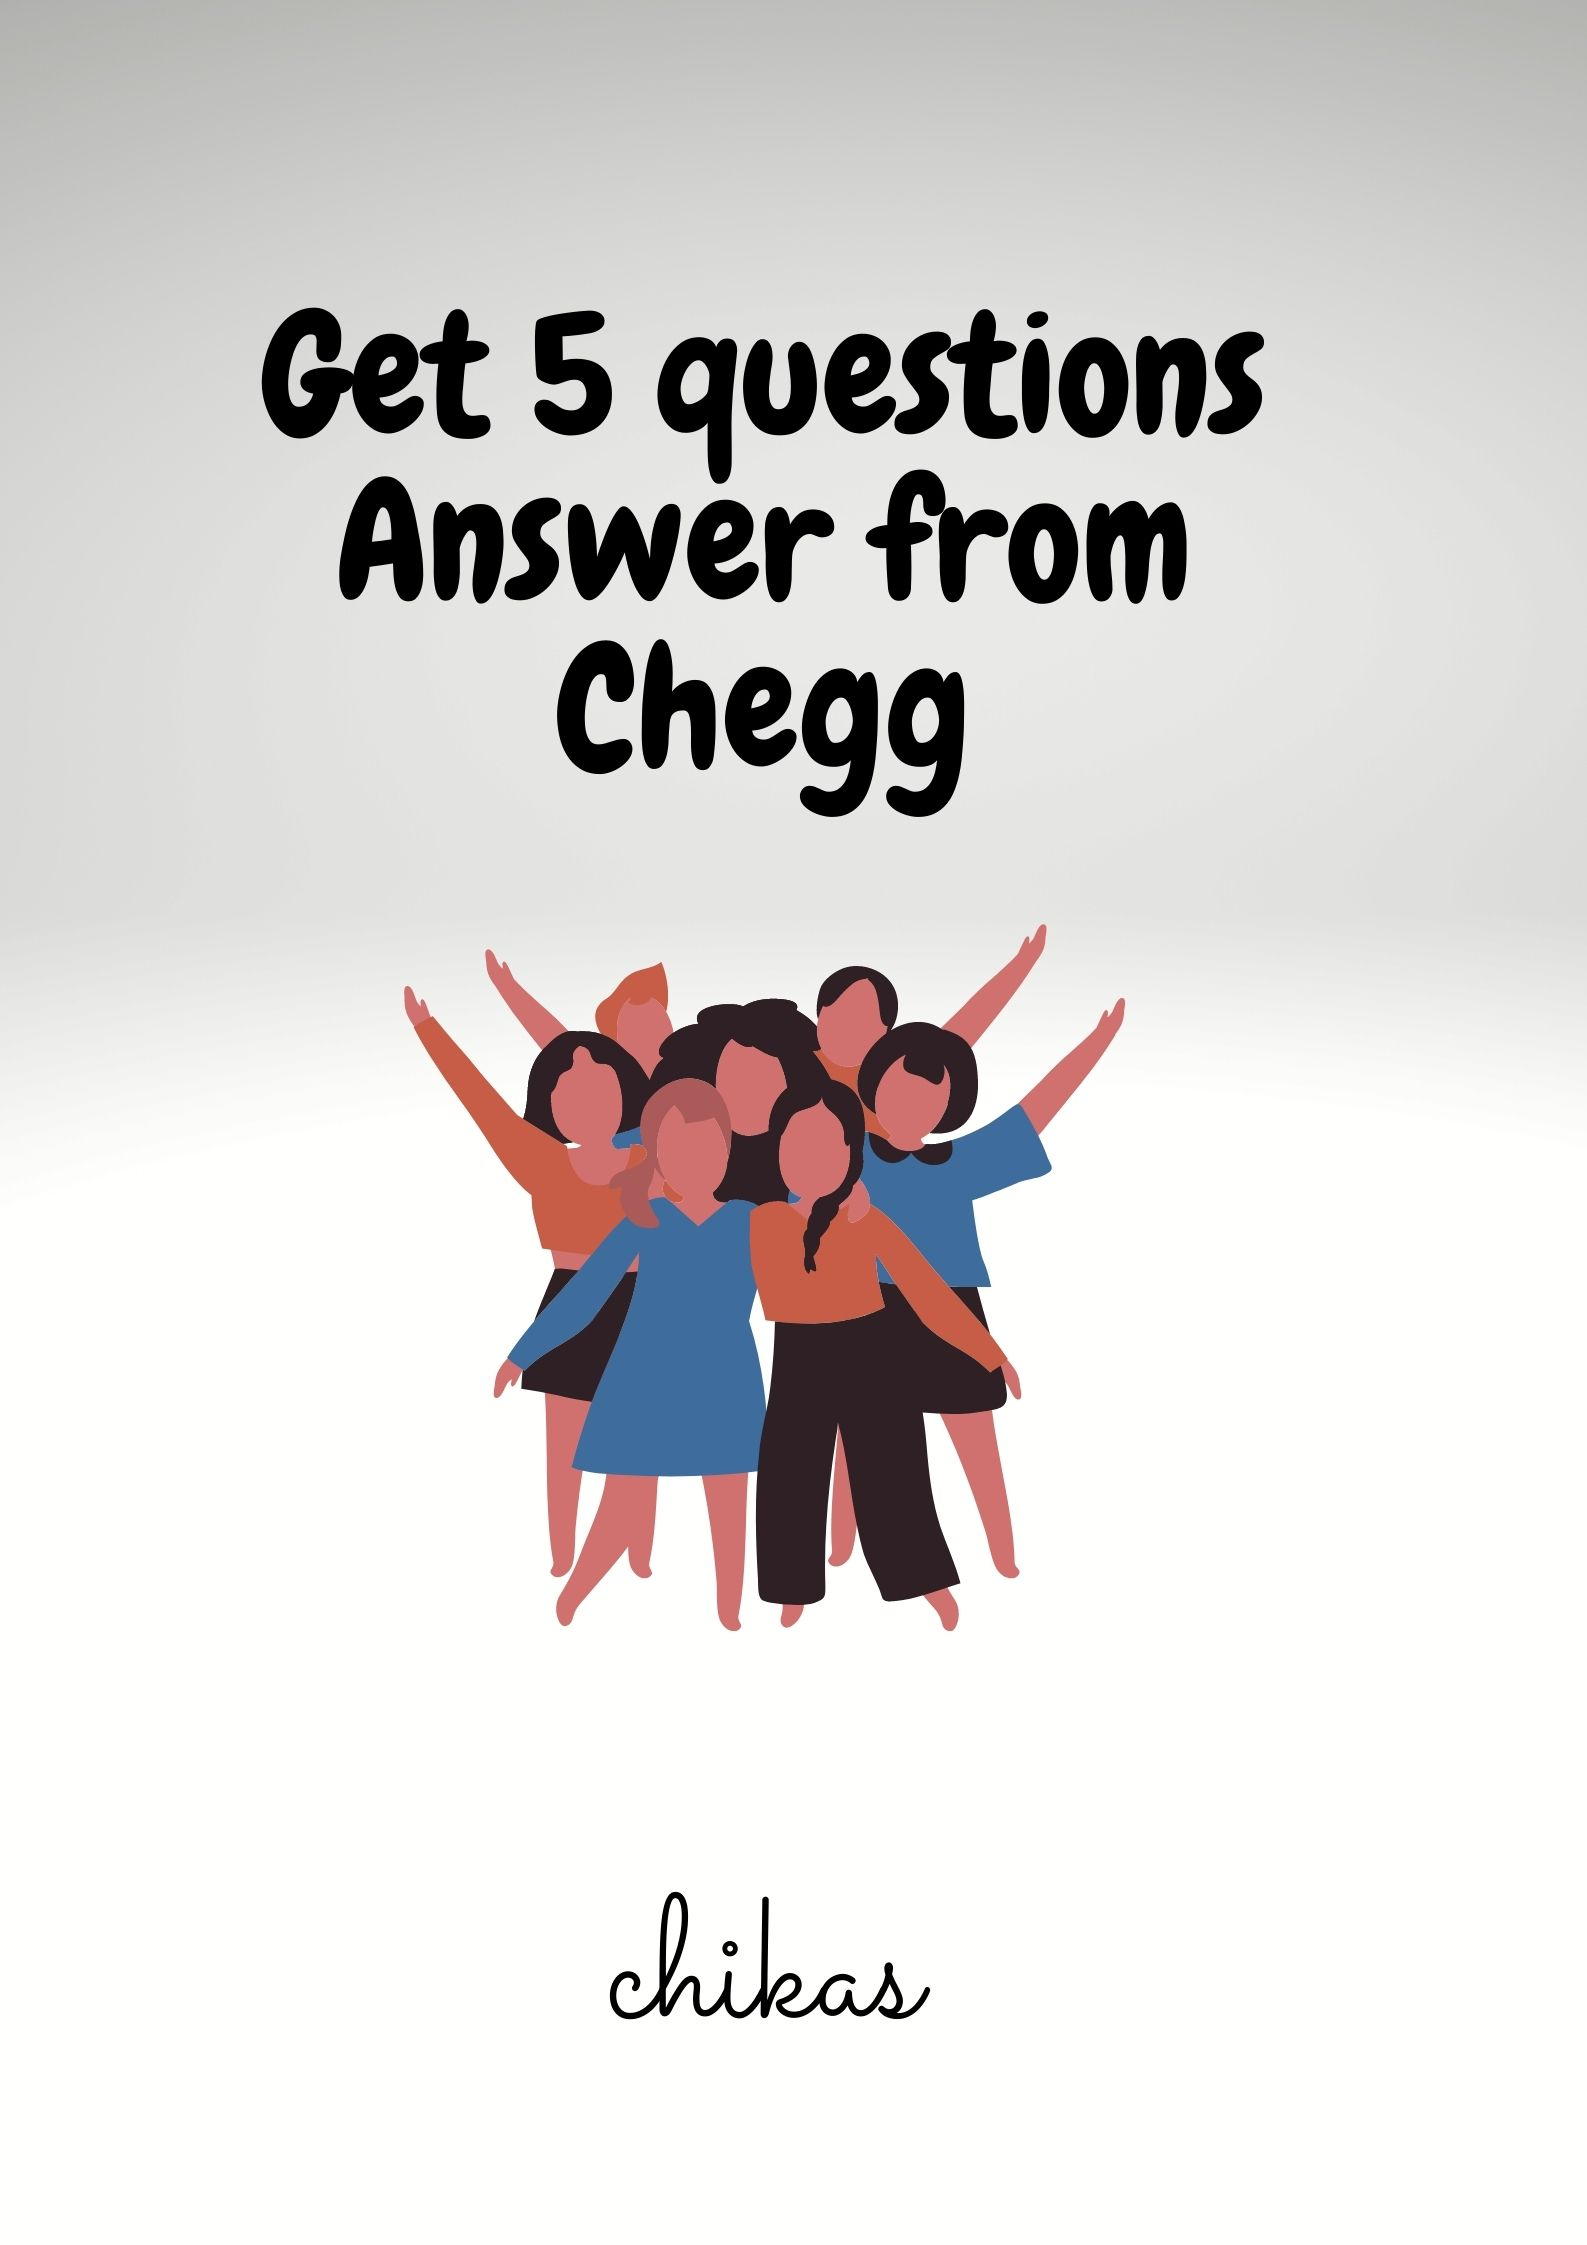 Will Get 5 Questions Answer from Chegg